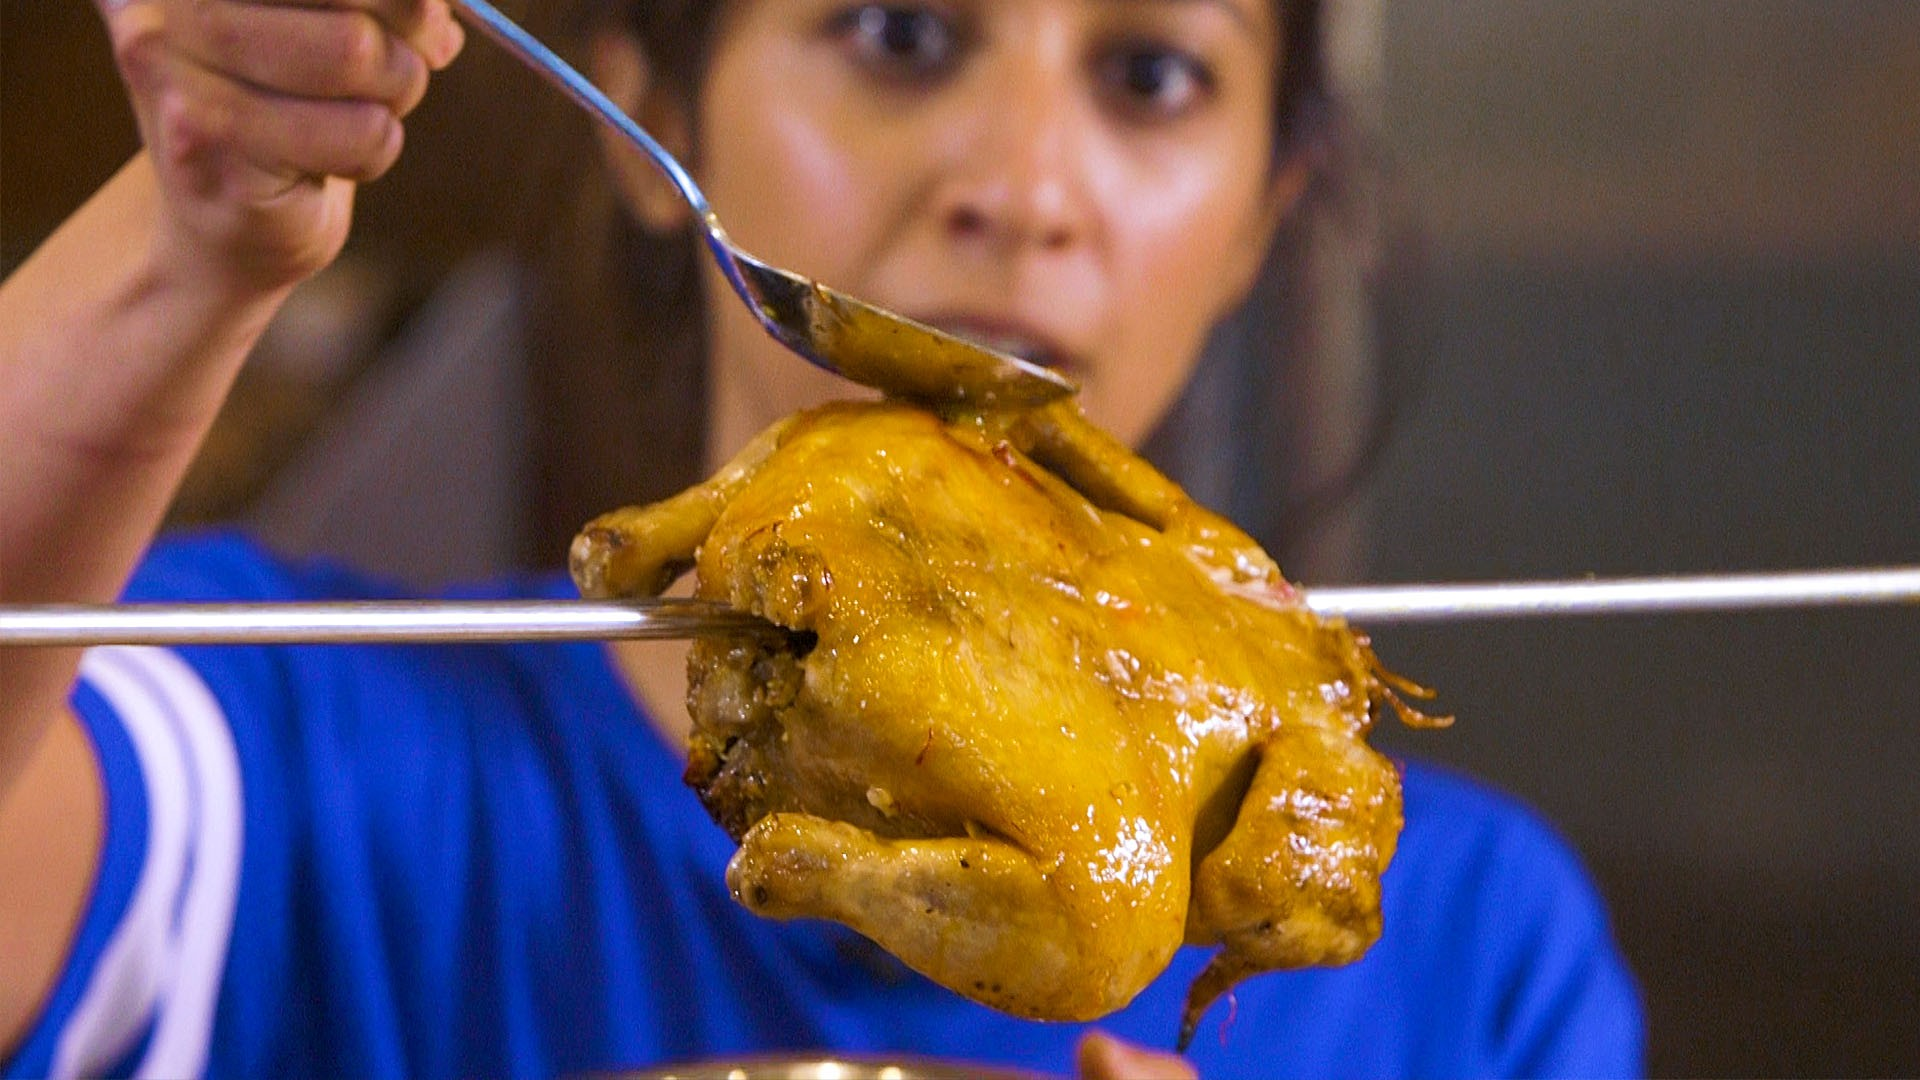 Recreating the World's Oldest Chicken and Date Recipe